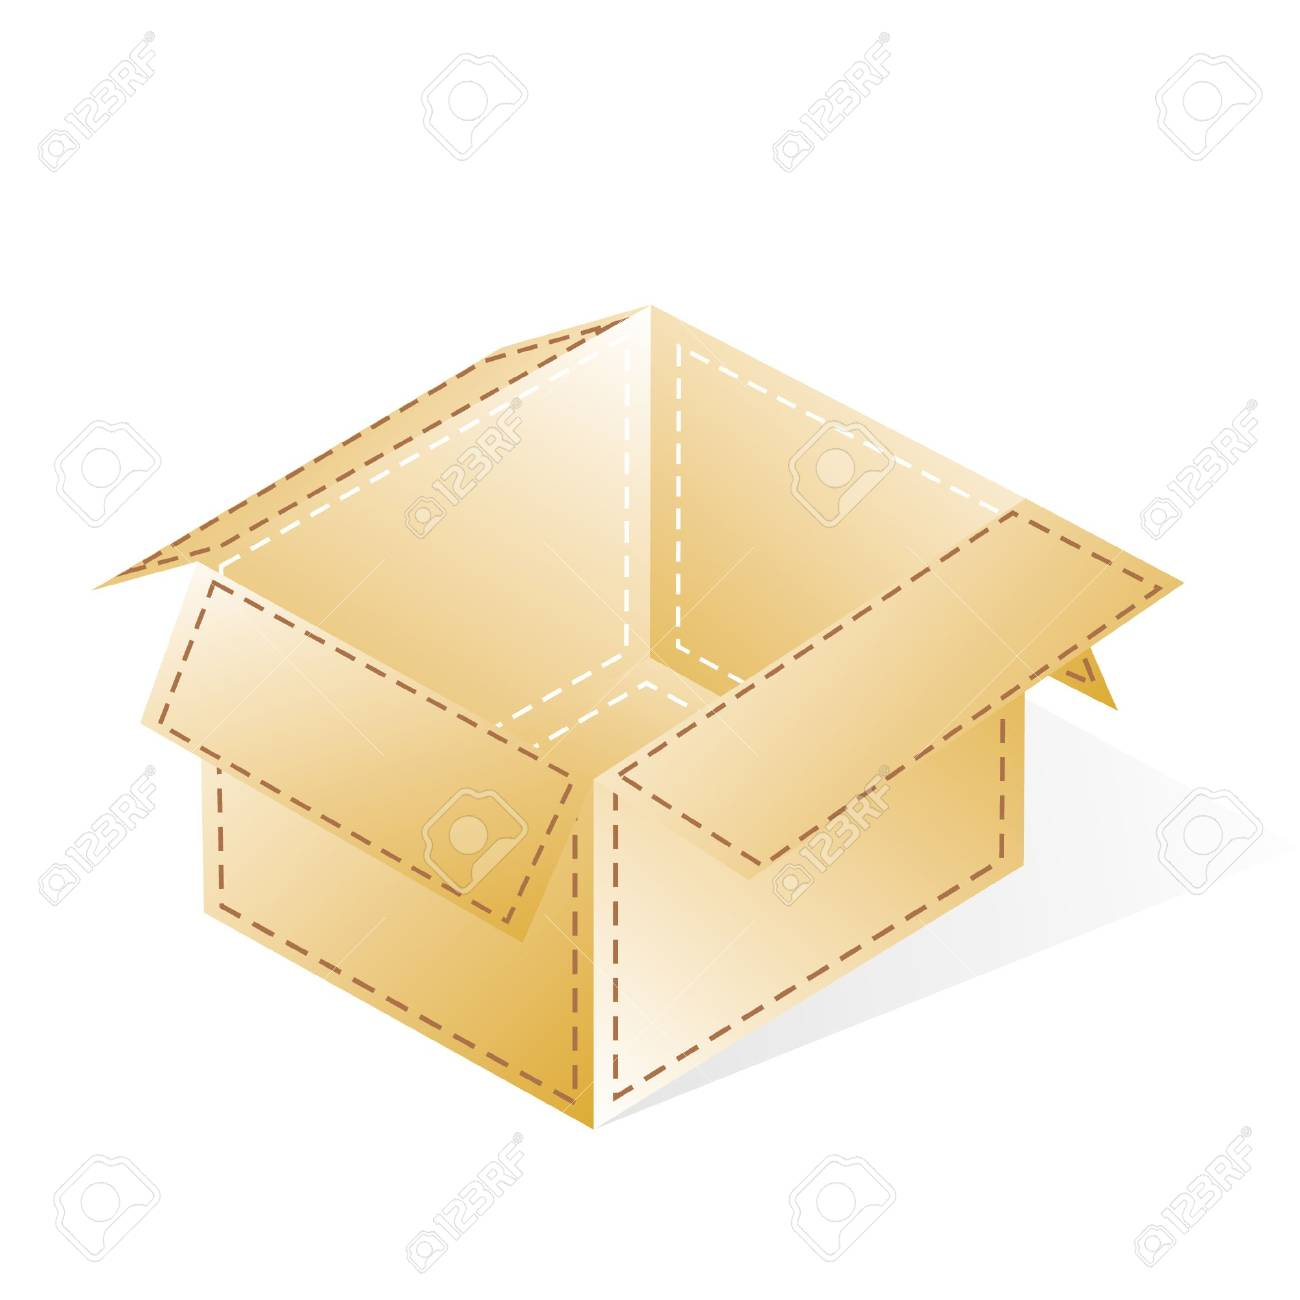 box, open, cardboard with a dash-dotted beige stripes Stock Vector - 15354125